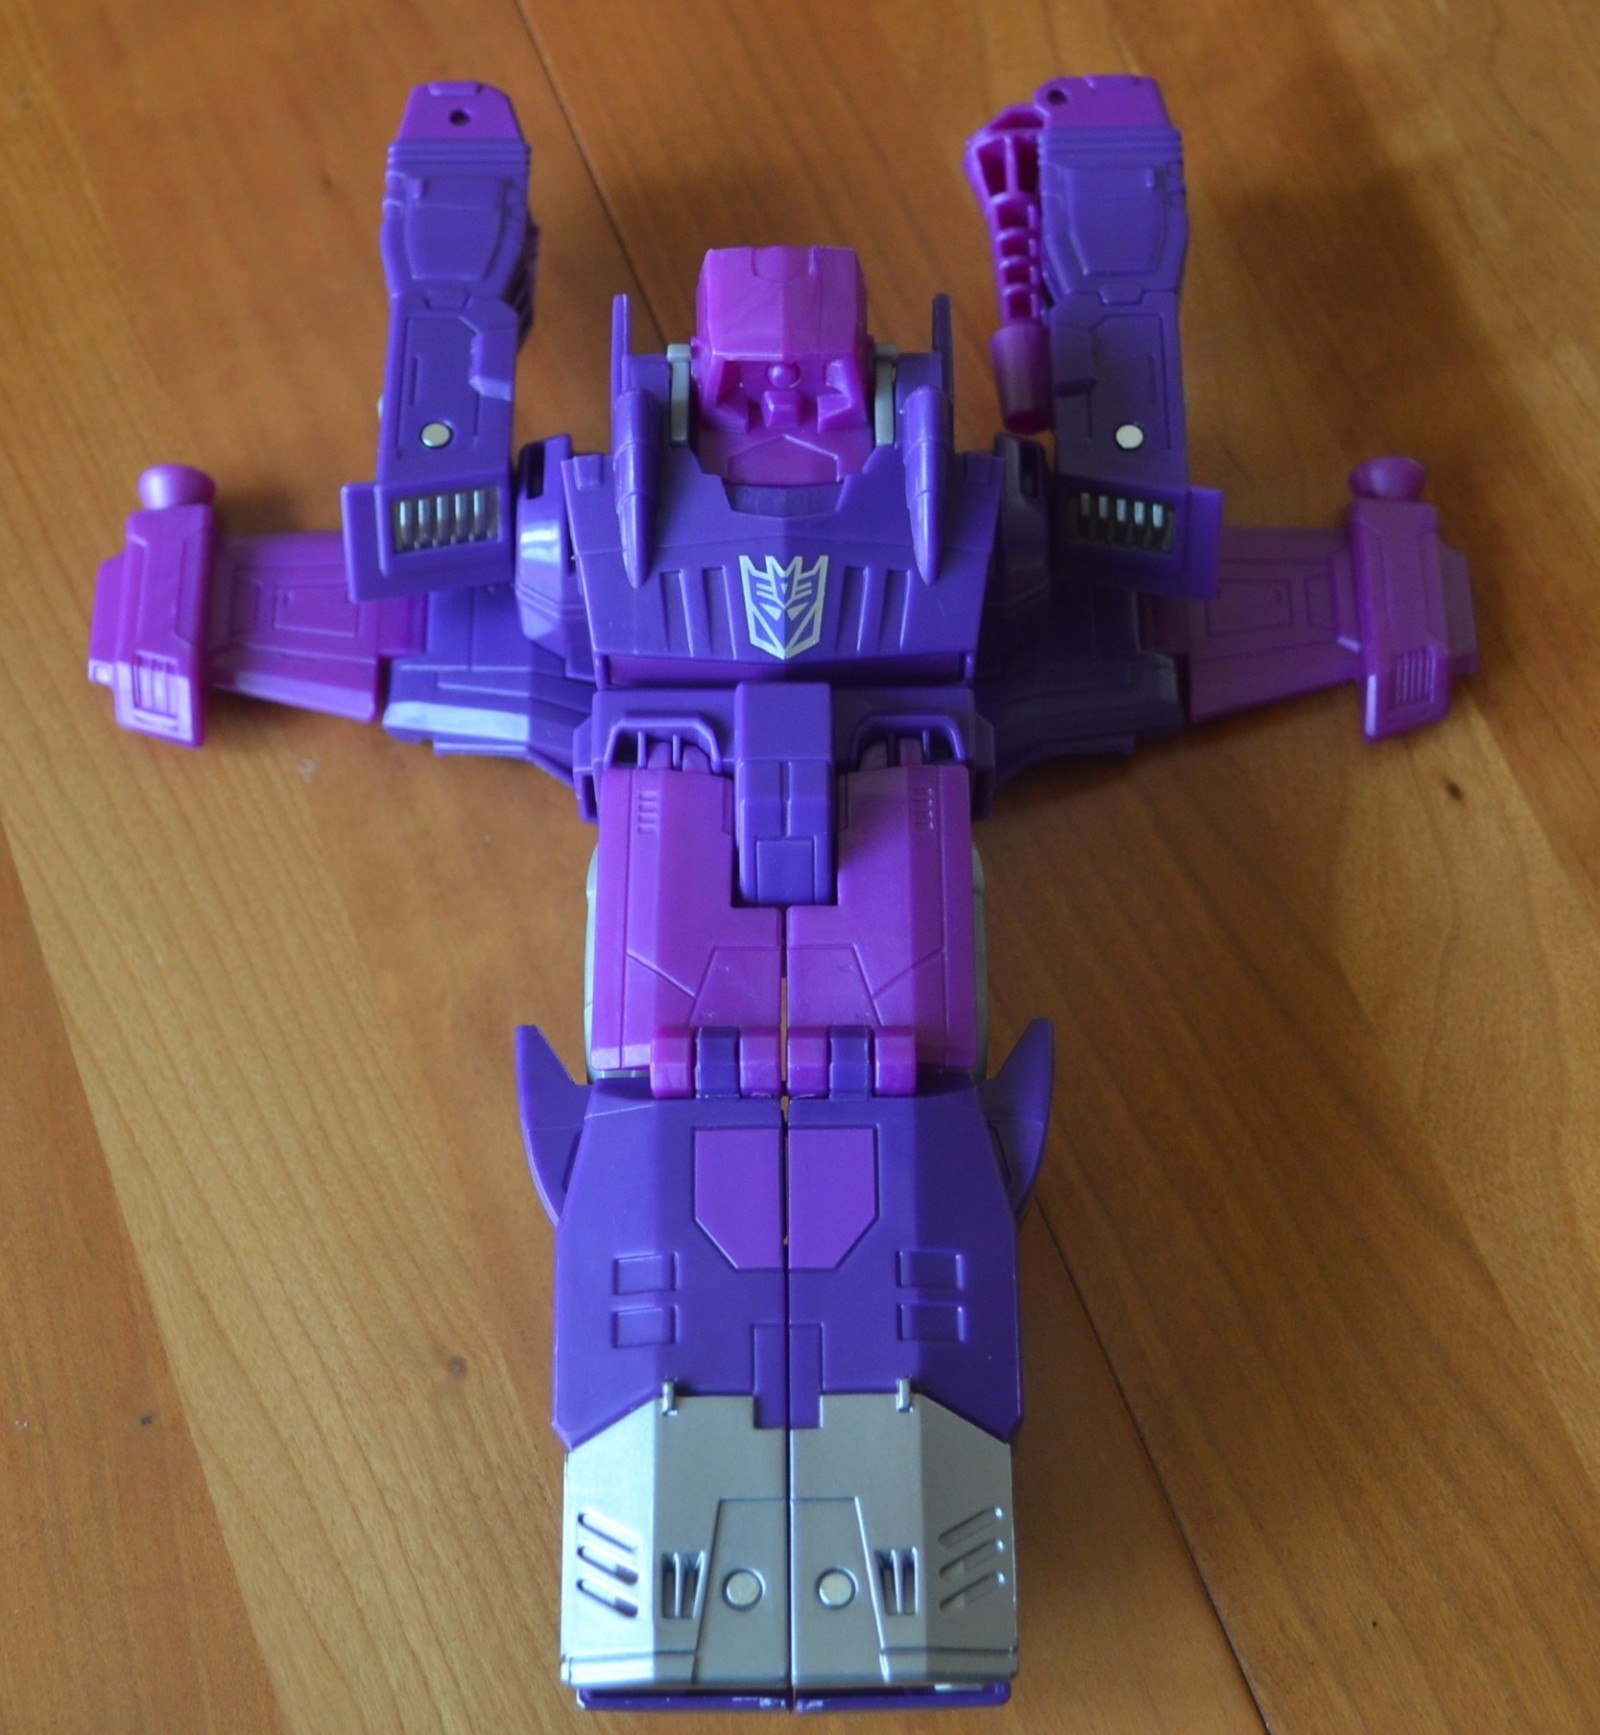 Transformers News: In Hand Images of Cyber Battalion Shockwave and Sideswipe Showing Poseability and Alt Modes